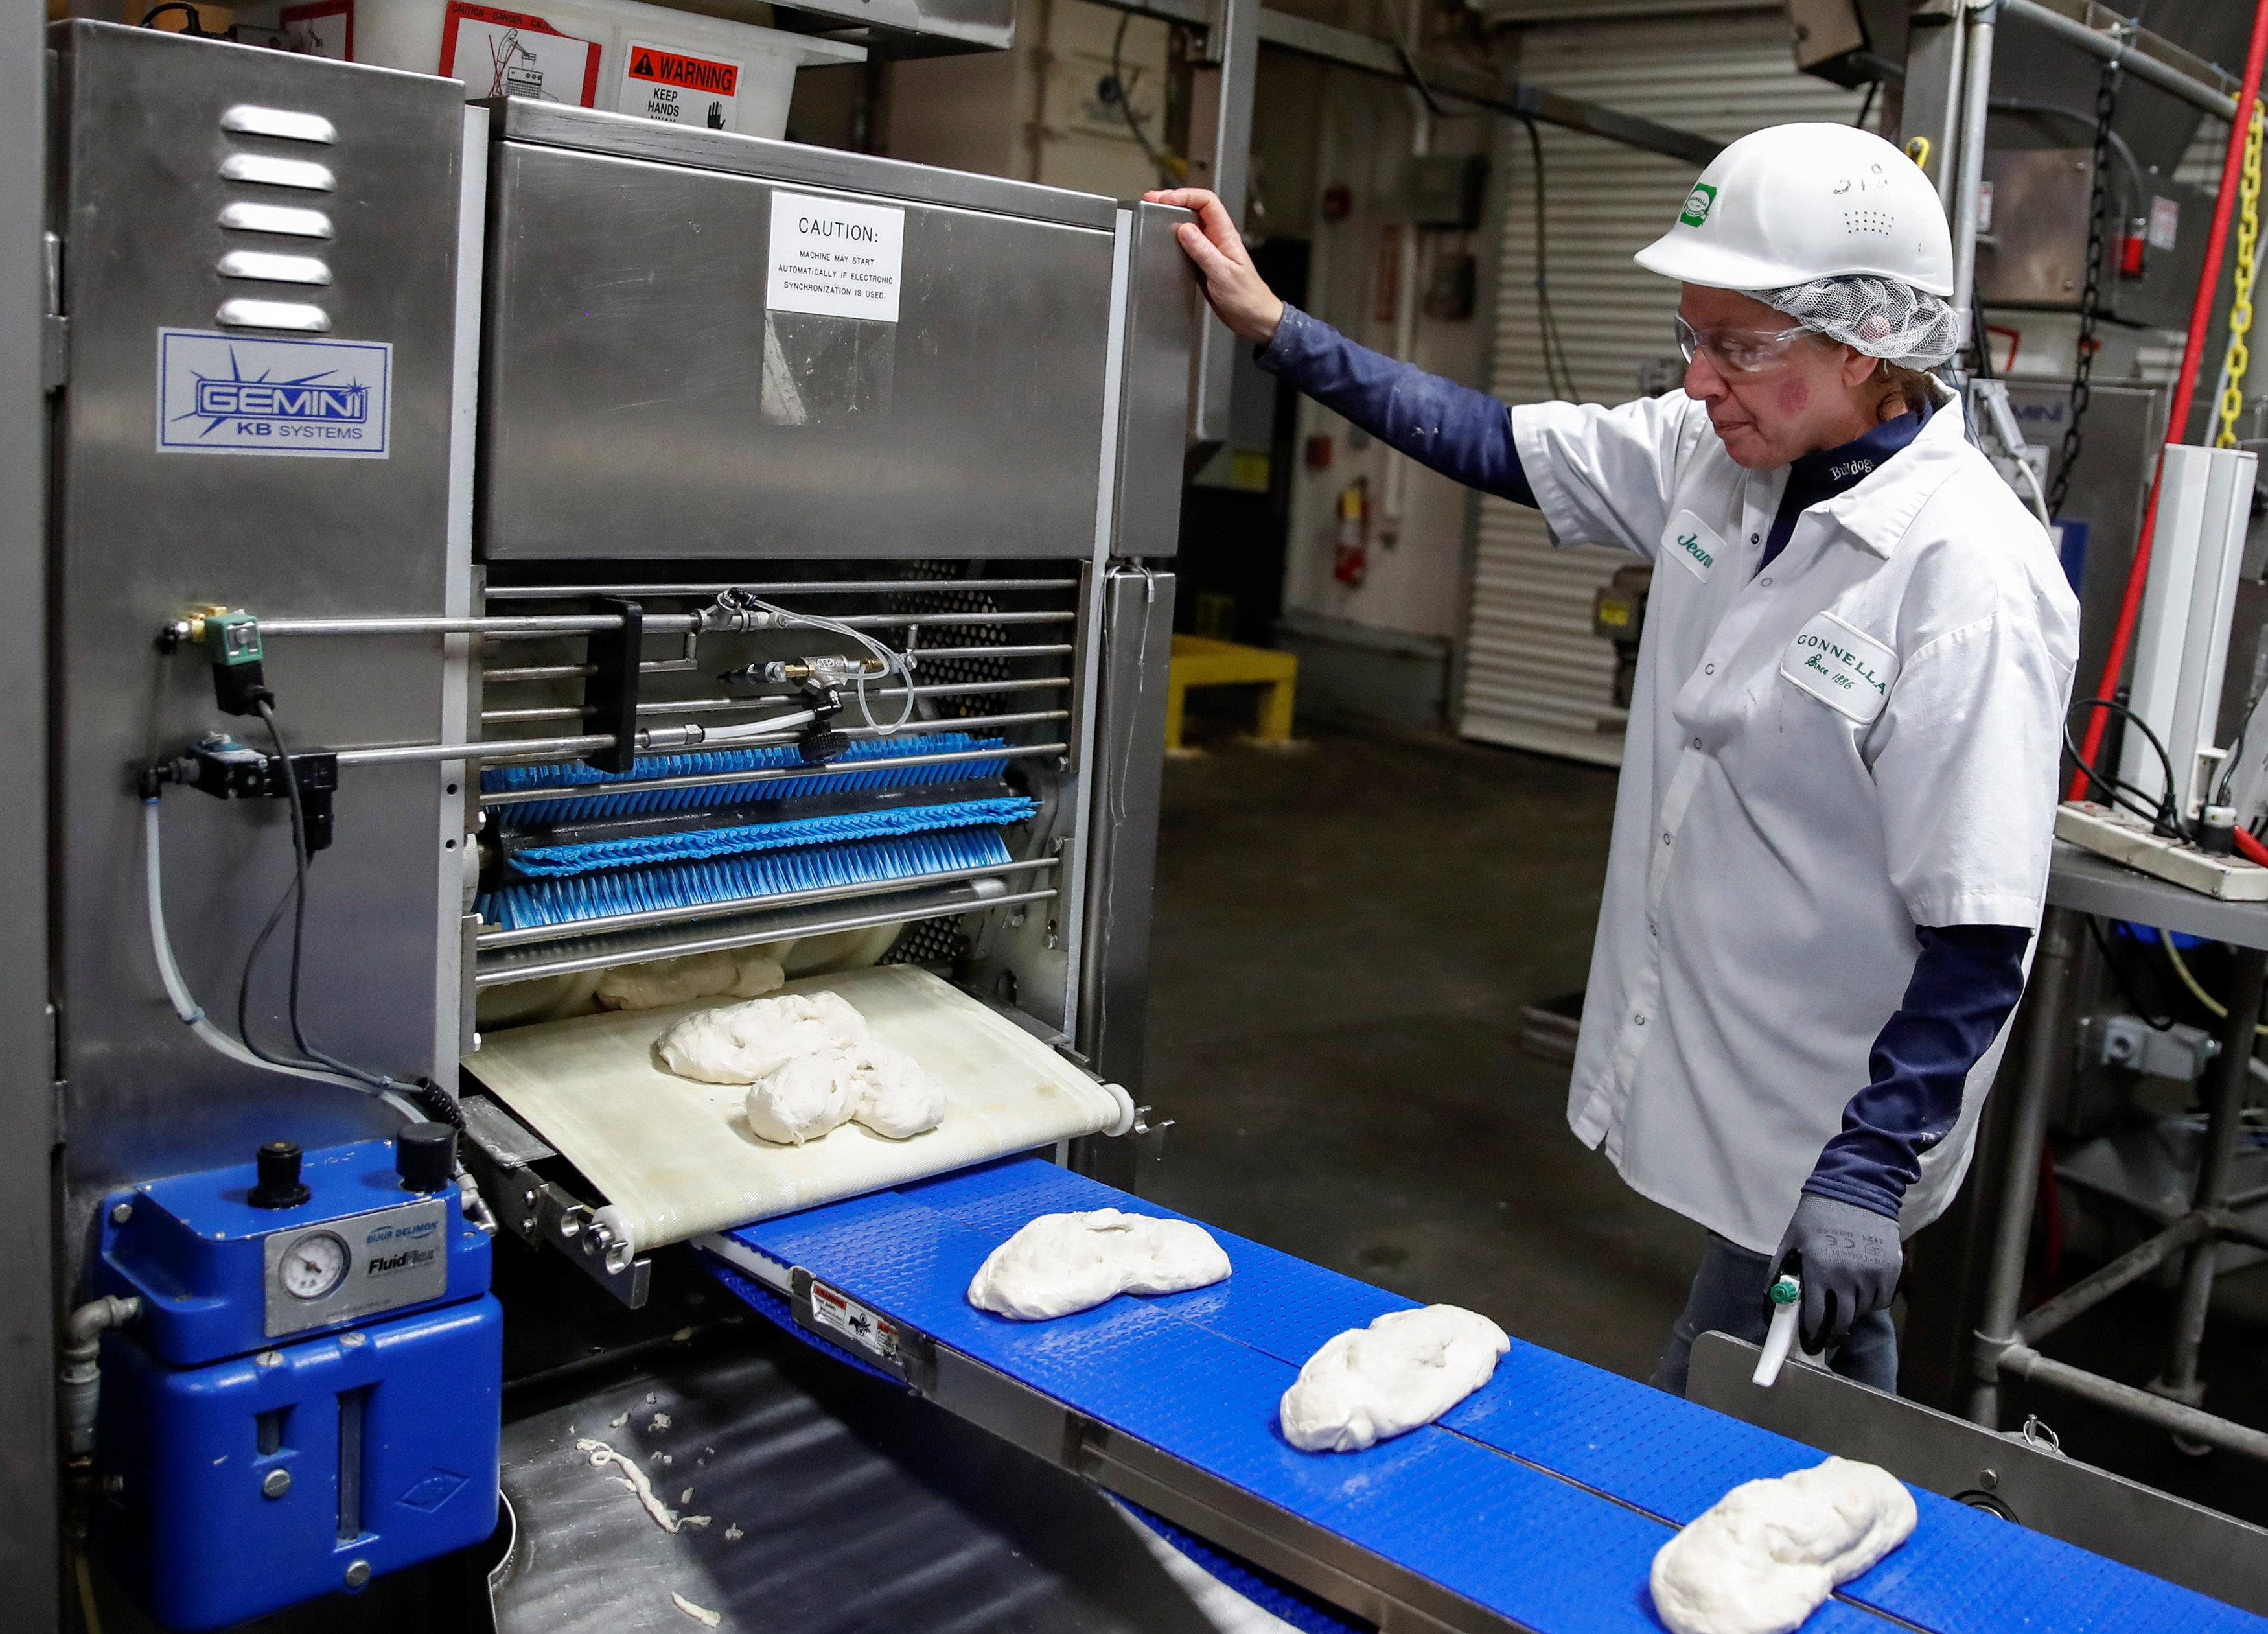 An employee checks on a dough during the production process at the Gonnella Baking Company in Aurora, Illinois, U.S., November 16, 2017. Picture taken November 16, 2017. Kamil Krzaczynski